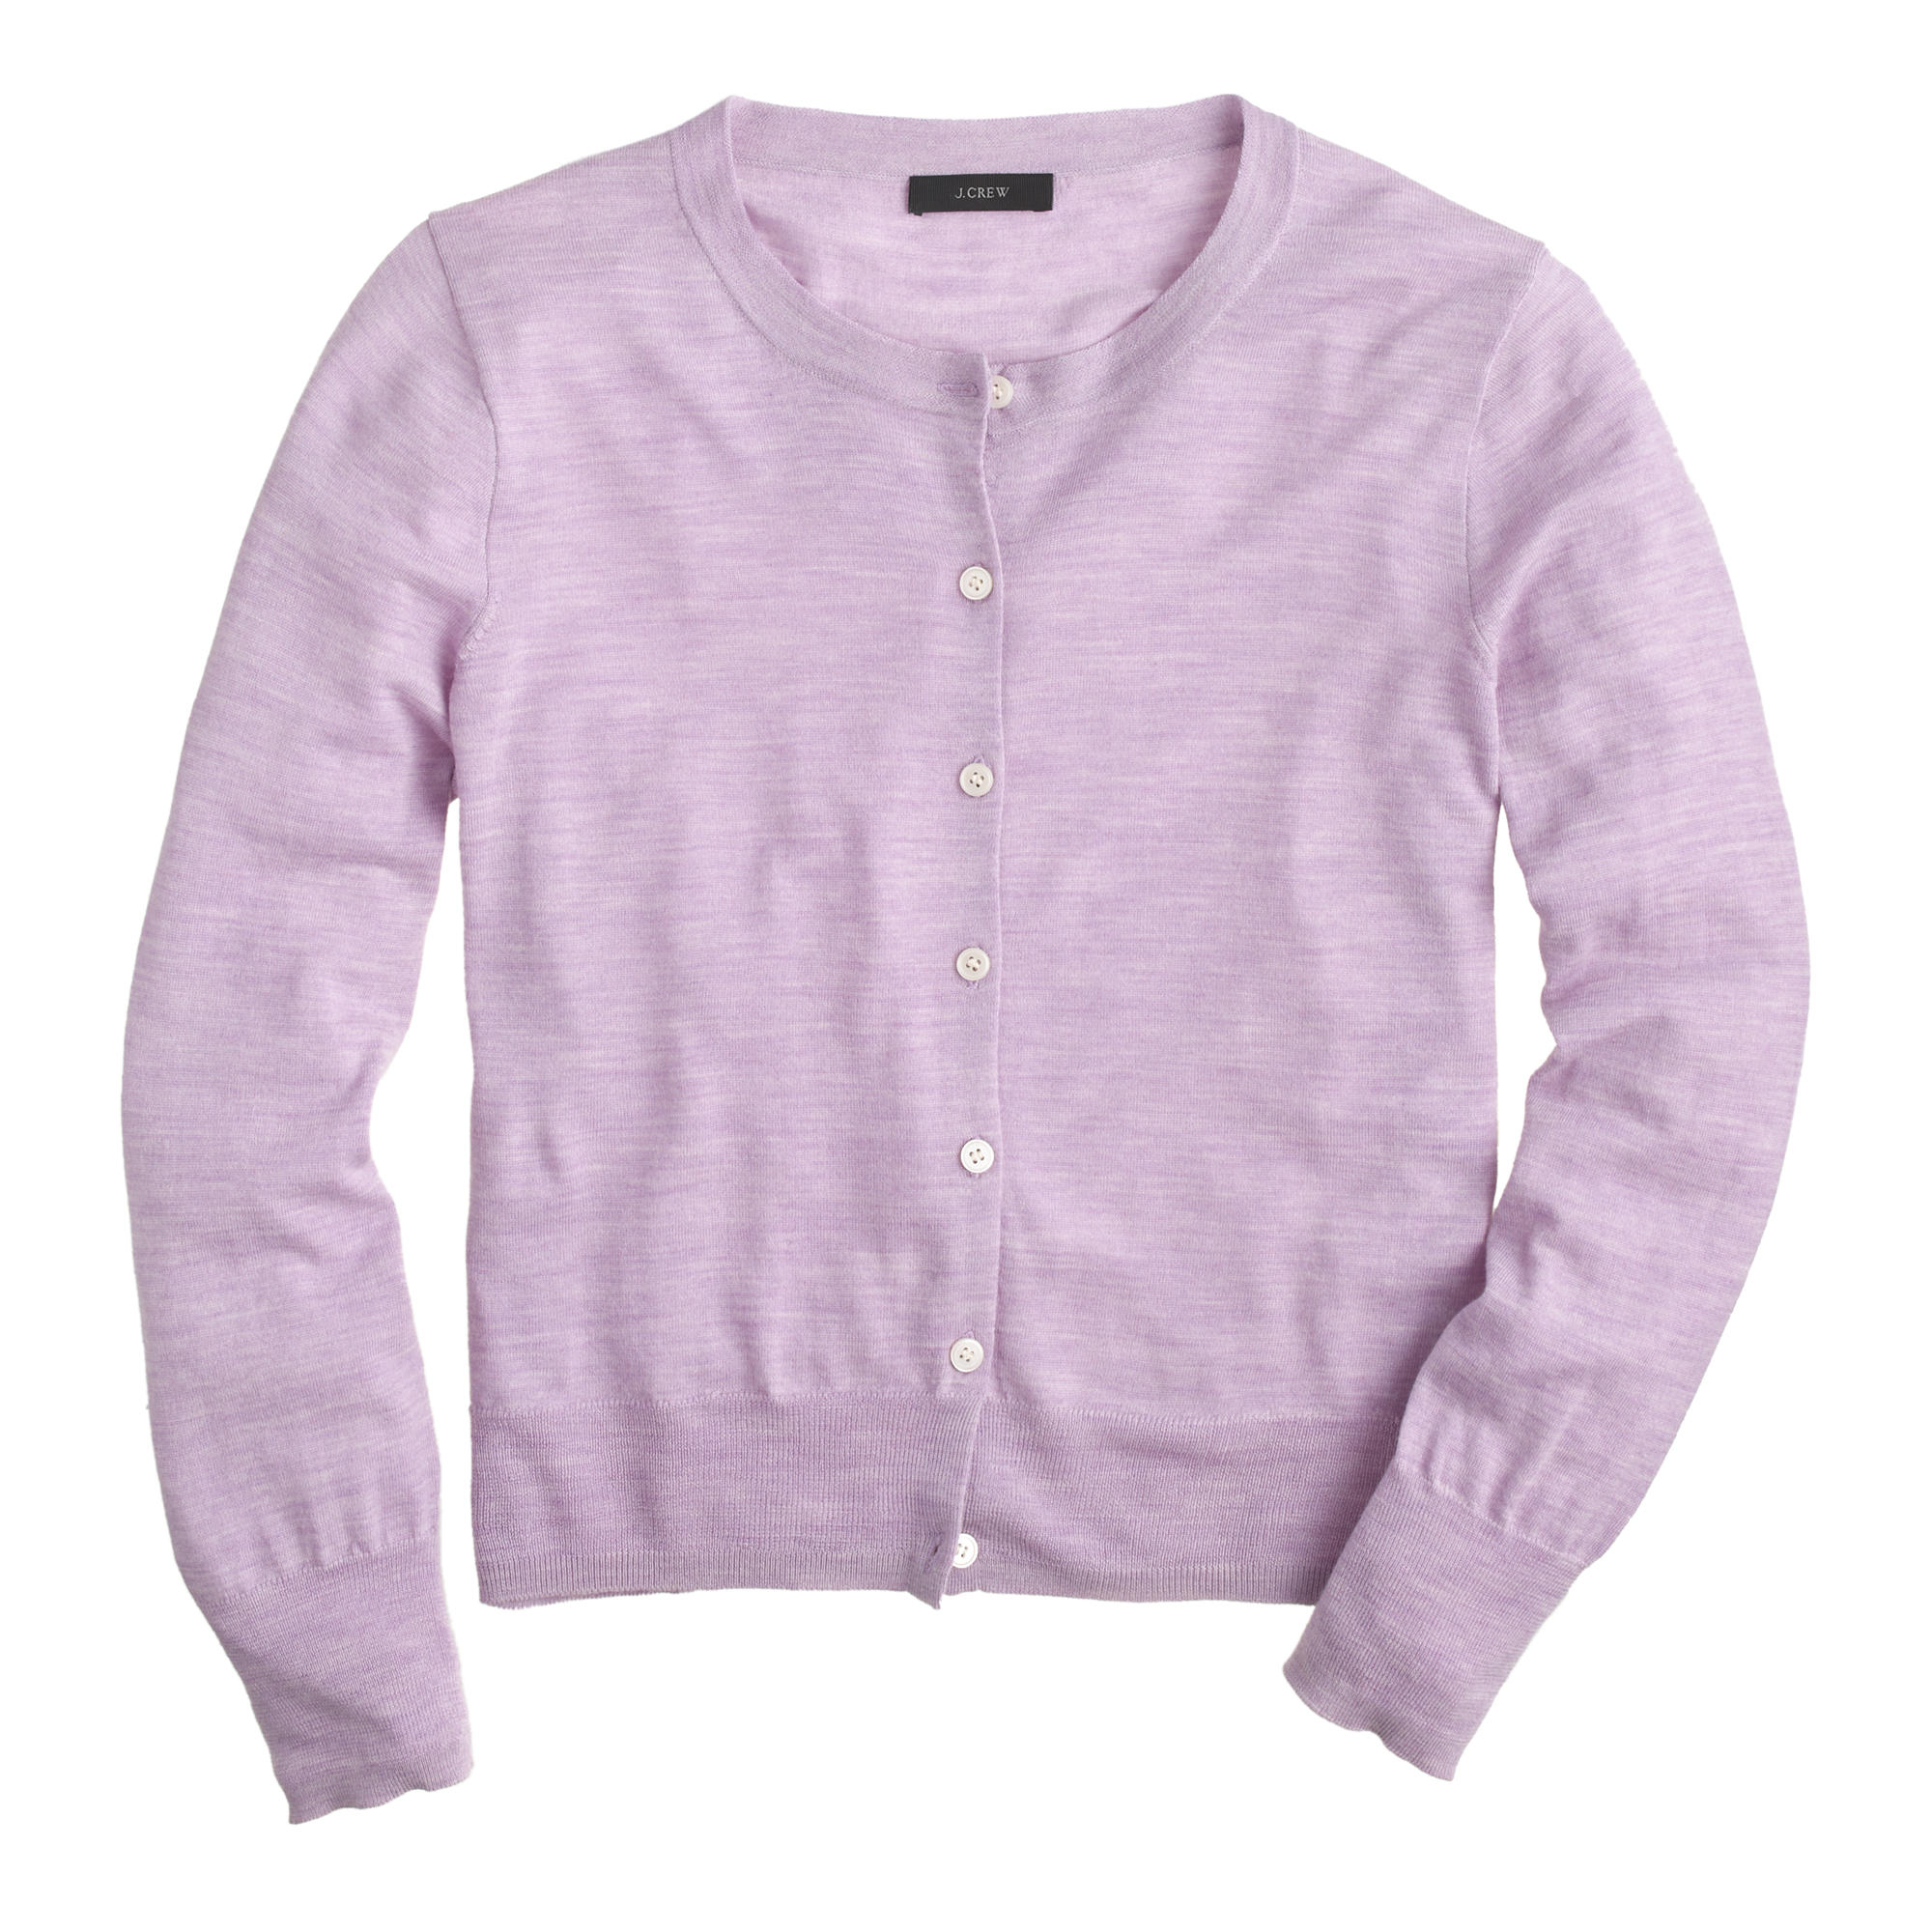 J Crew Tilly Sweater Review 105